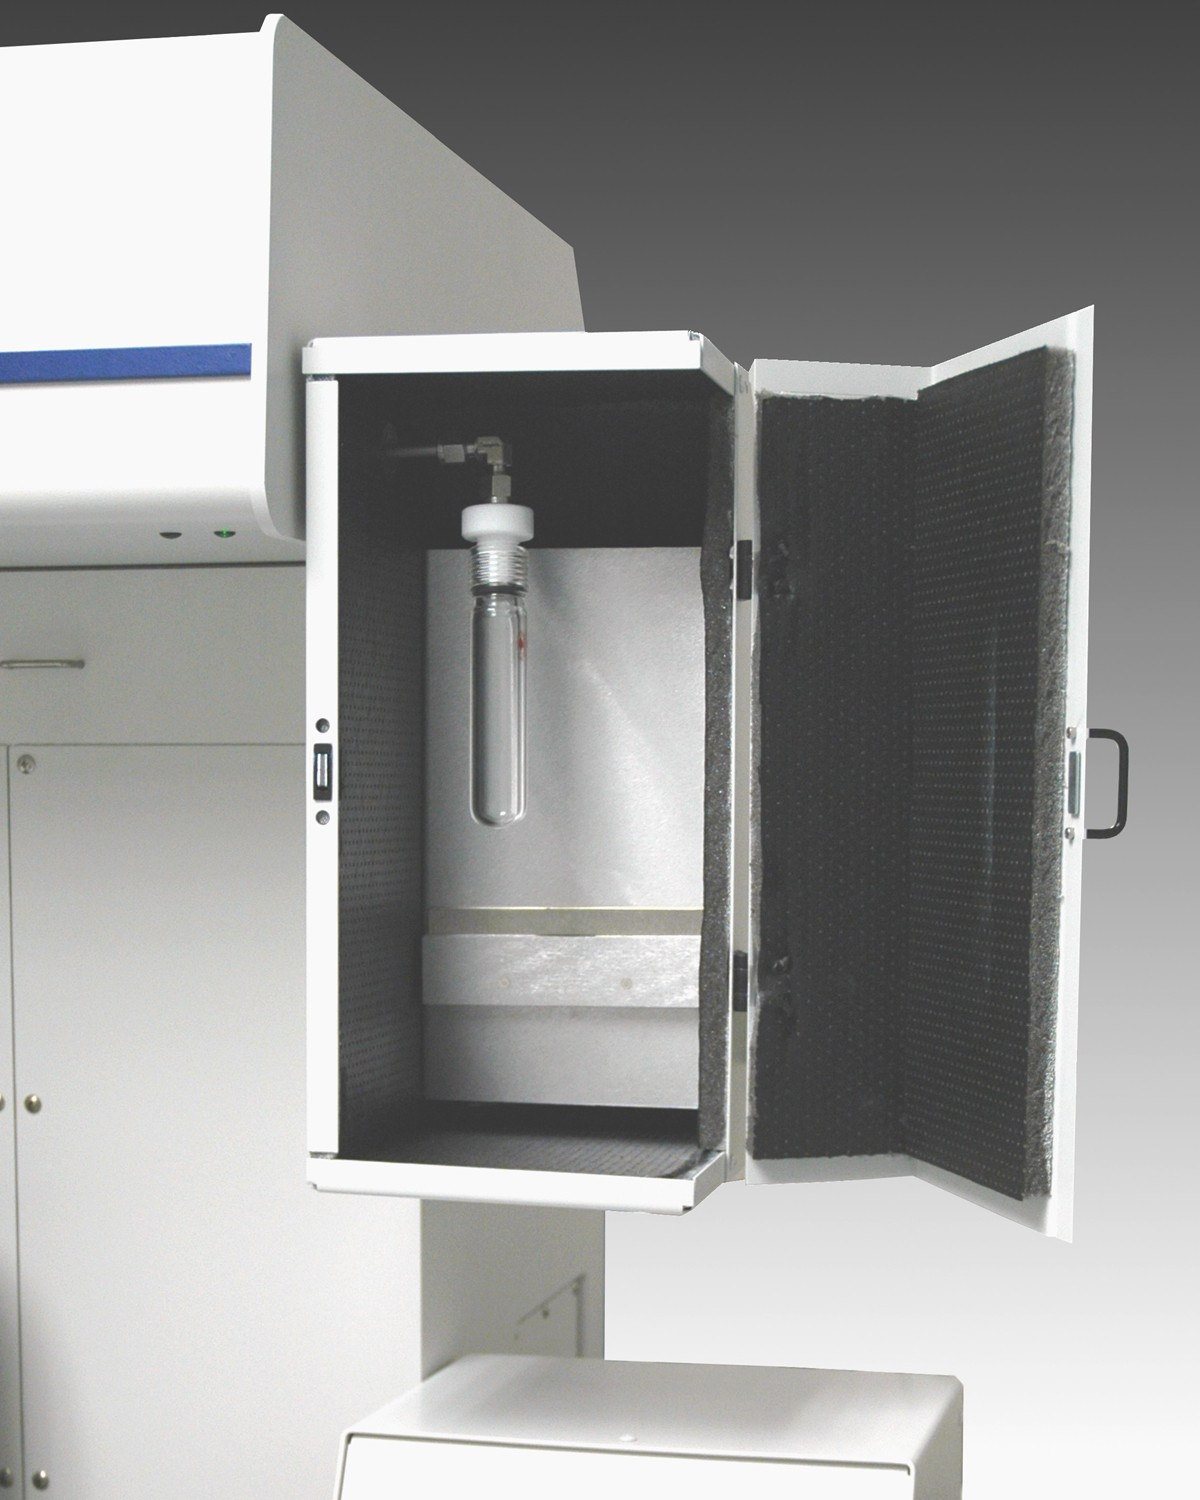 Asap Tour 2020 Vapor and Water Vapor Options Now Available for Micromeritics